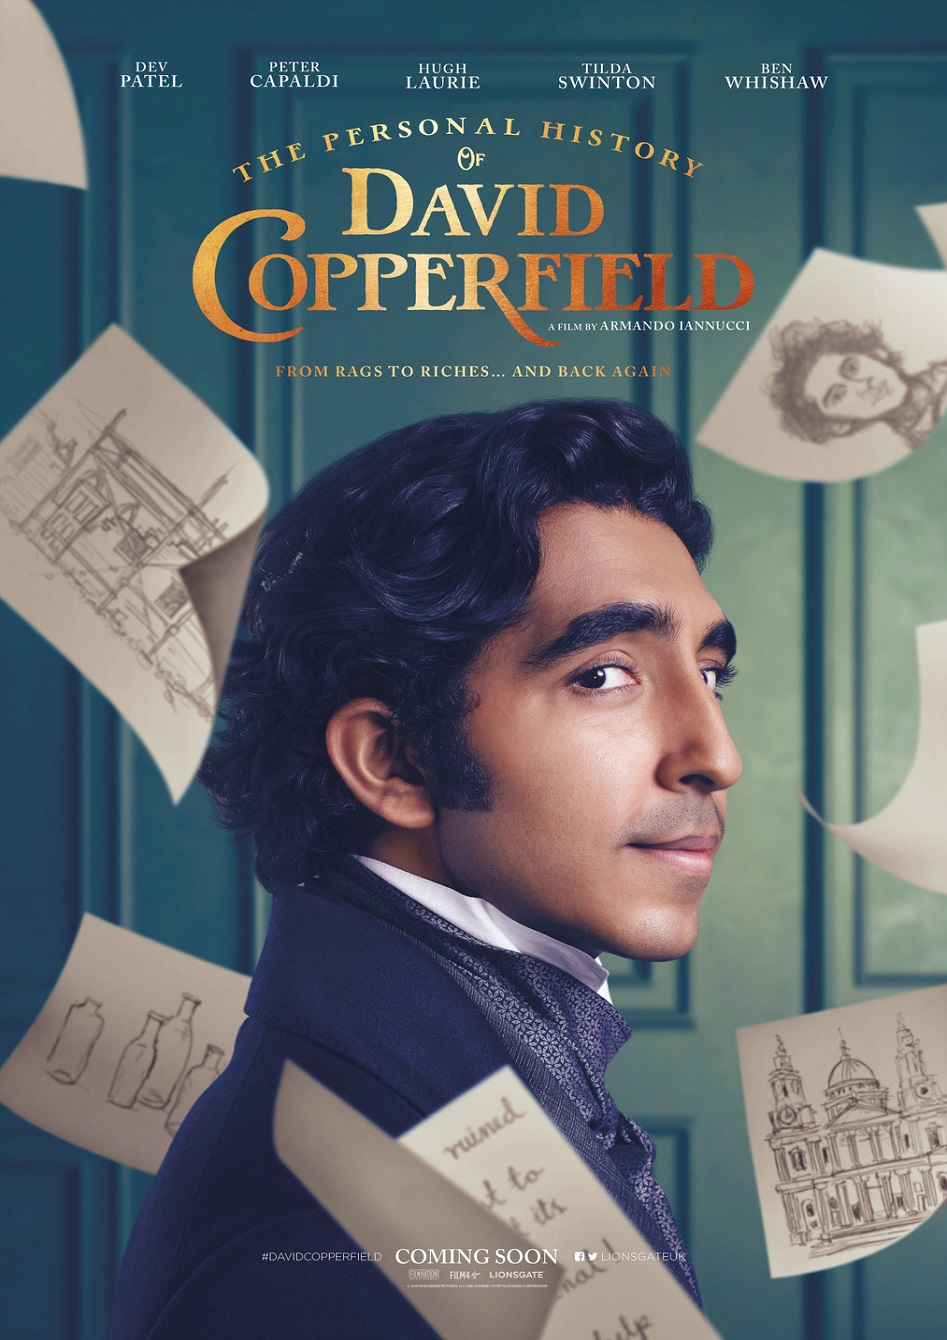 David Copperfied